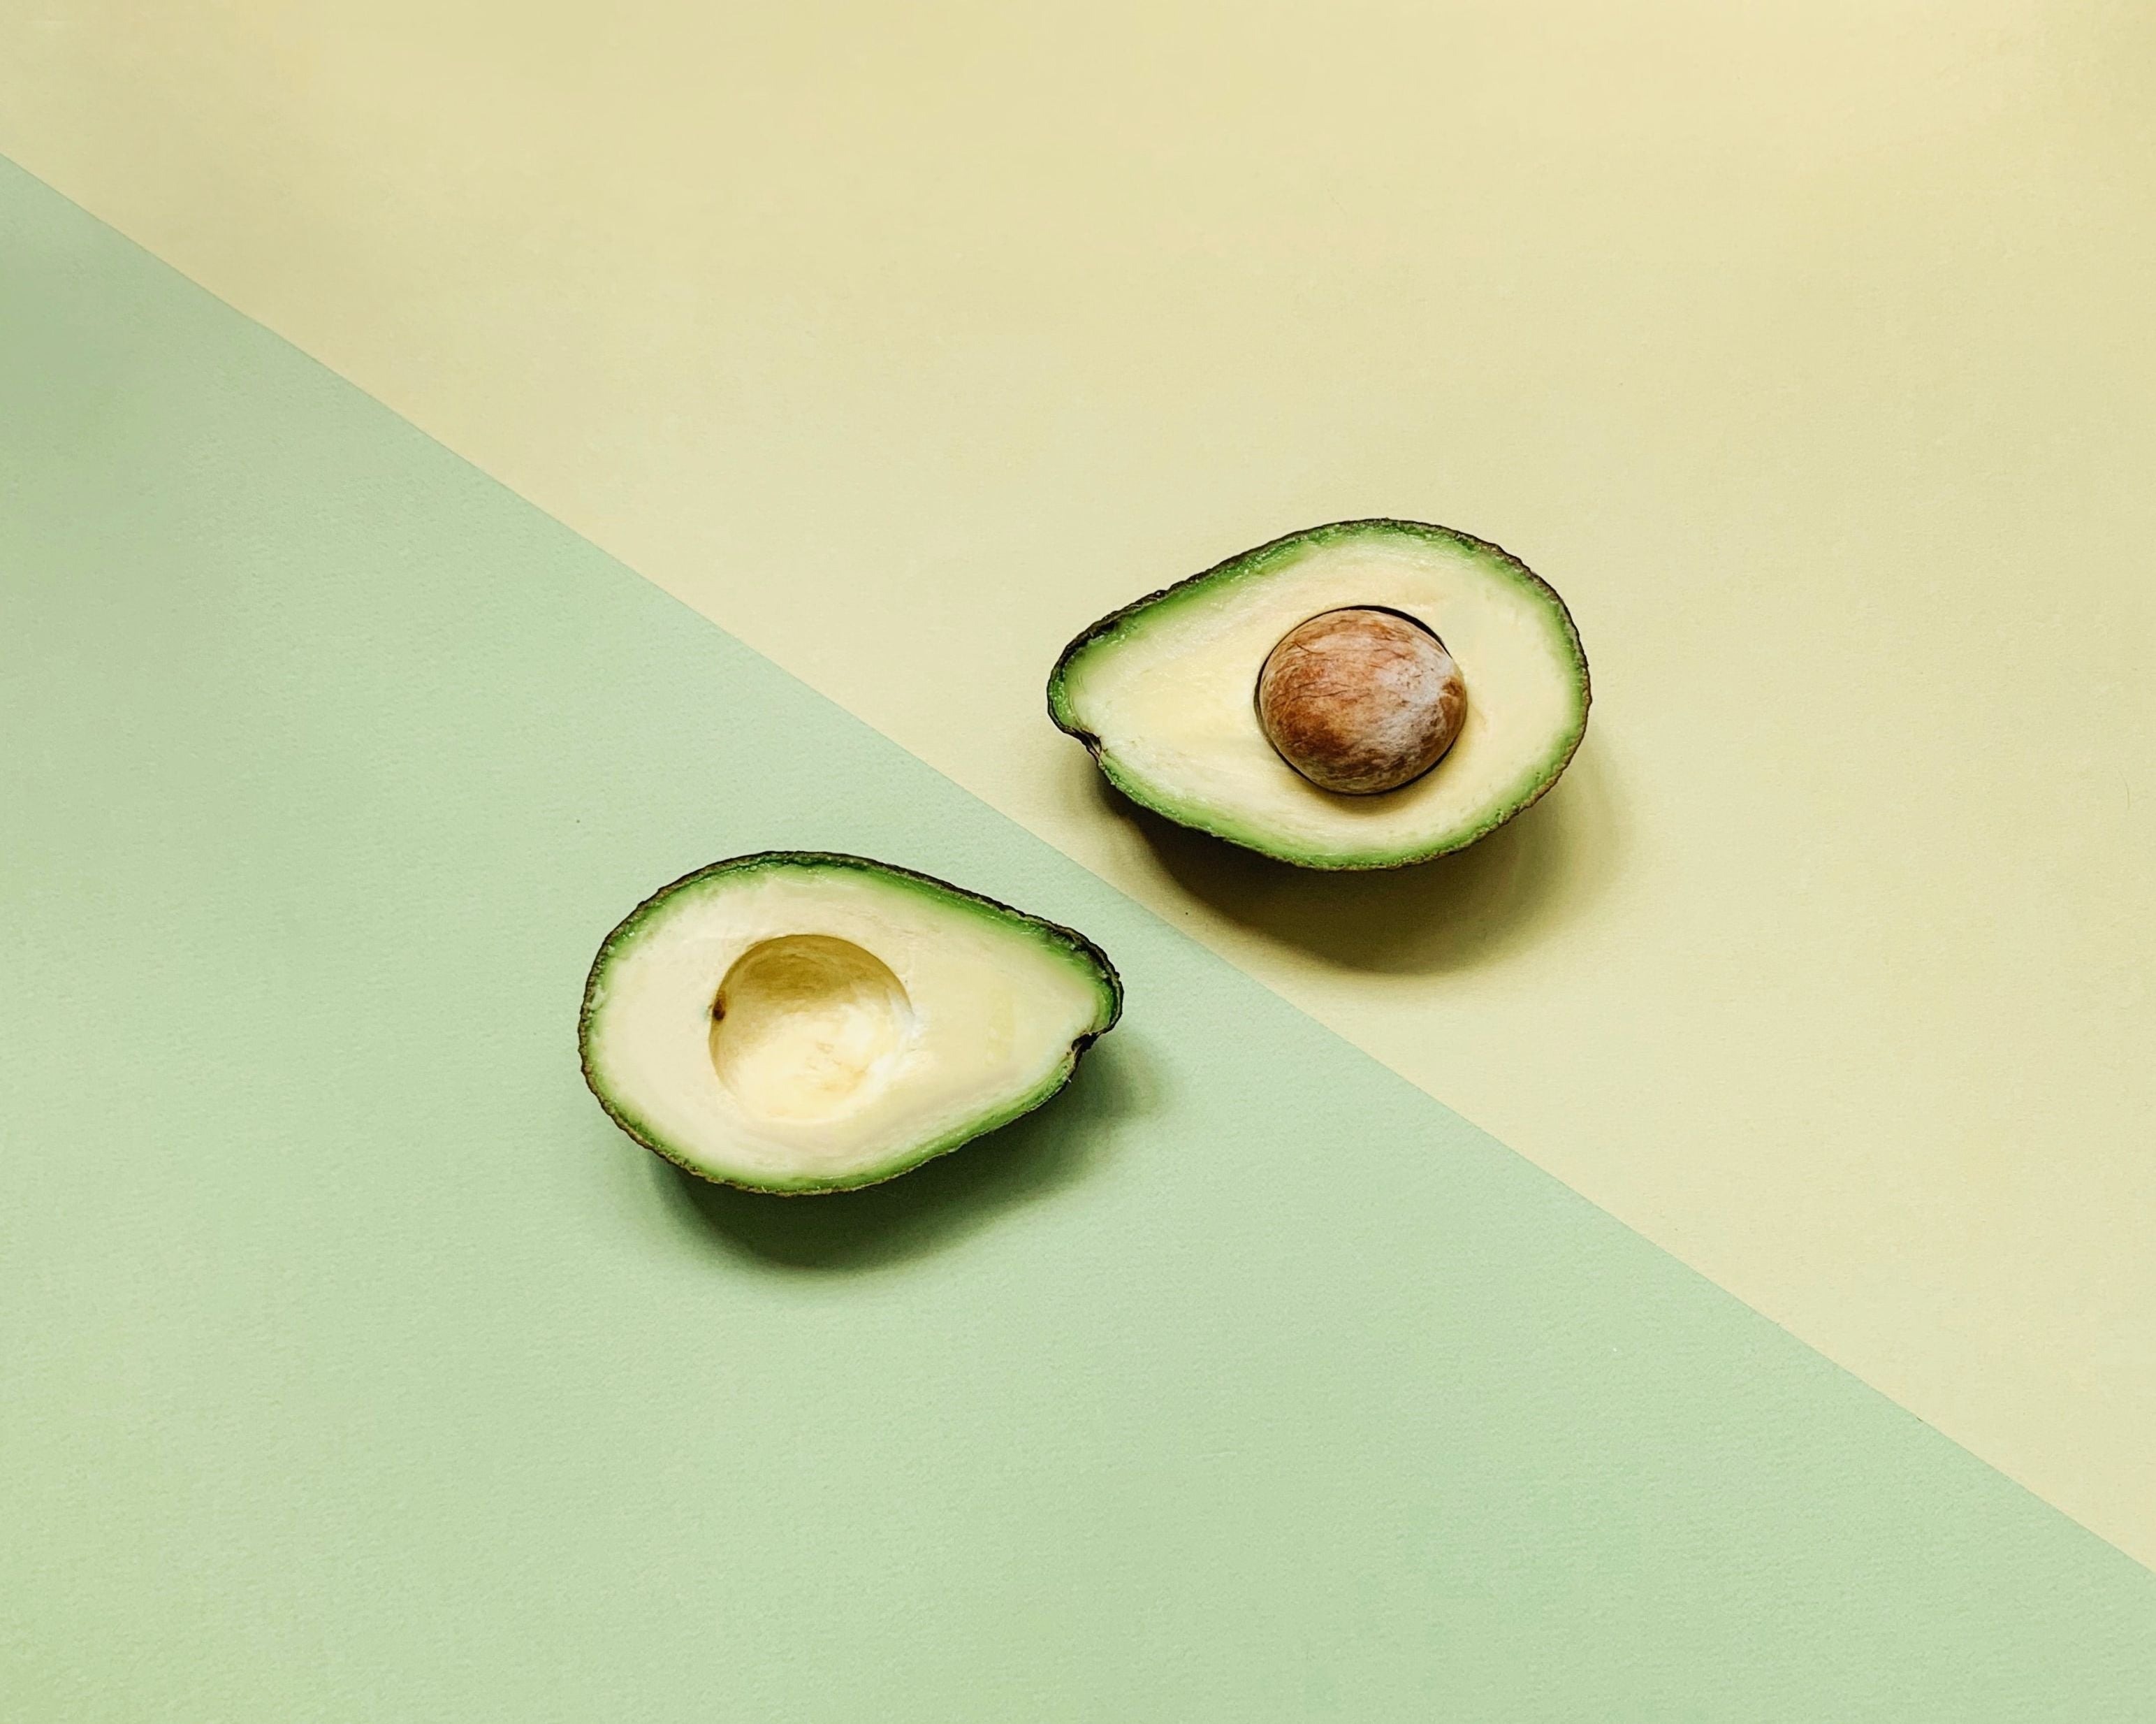 Avocadoes for Dry Skin